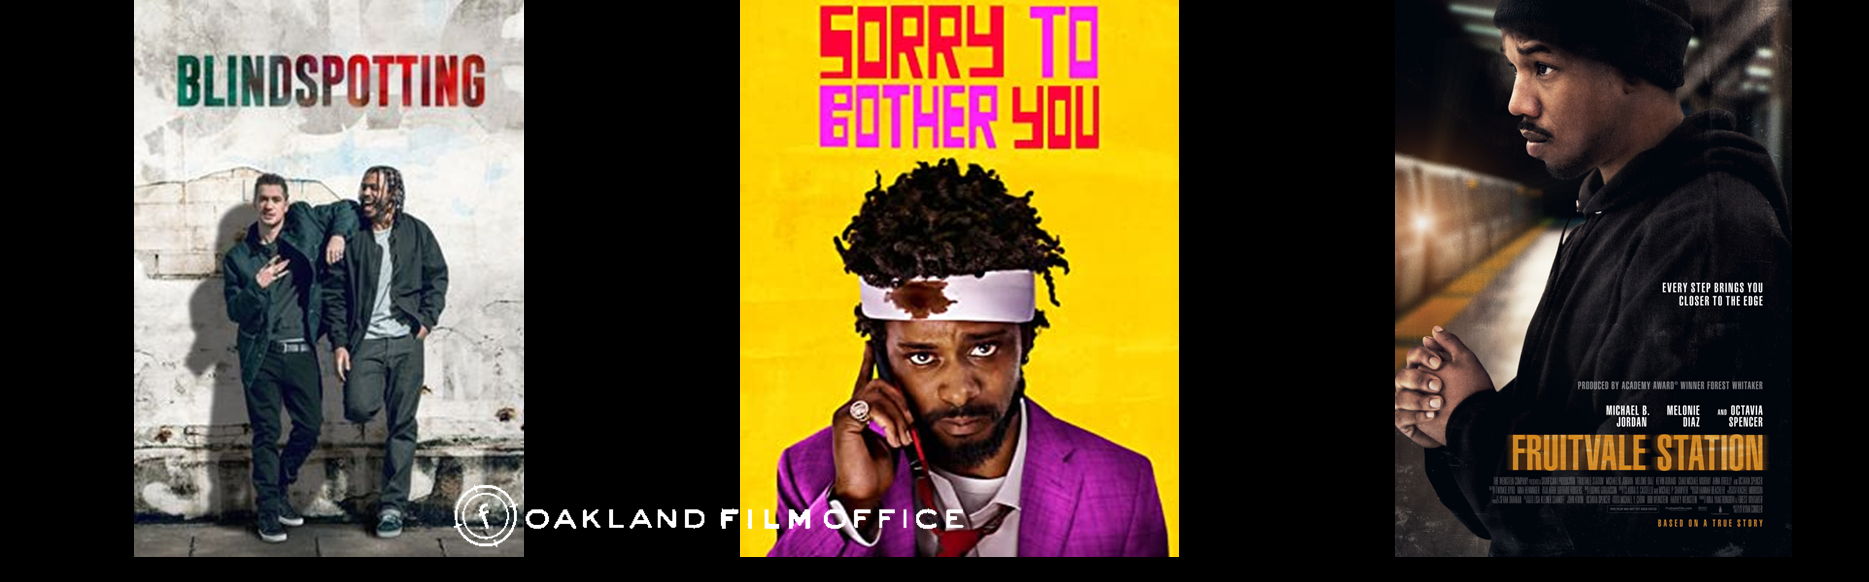 Blindspotting Sorry to Bother You and Fruitvale Station poster images Oakland Film Office website page header collage